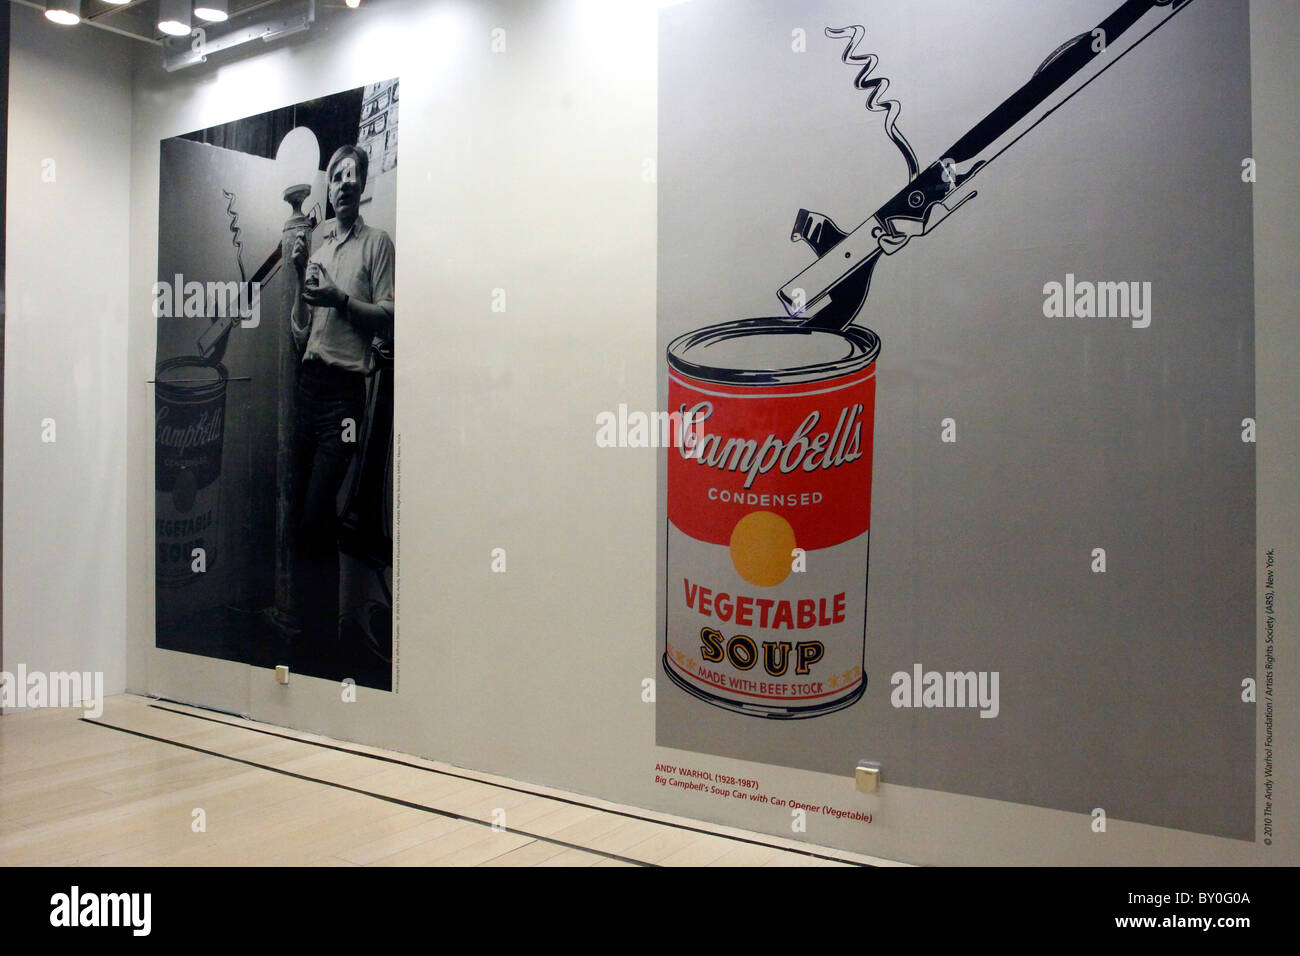 Andy Warhol exhibit at Christie's Auction House, Manhattan, New York City - Stock Image